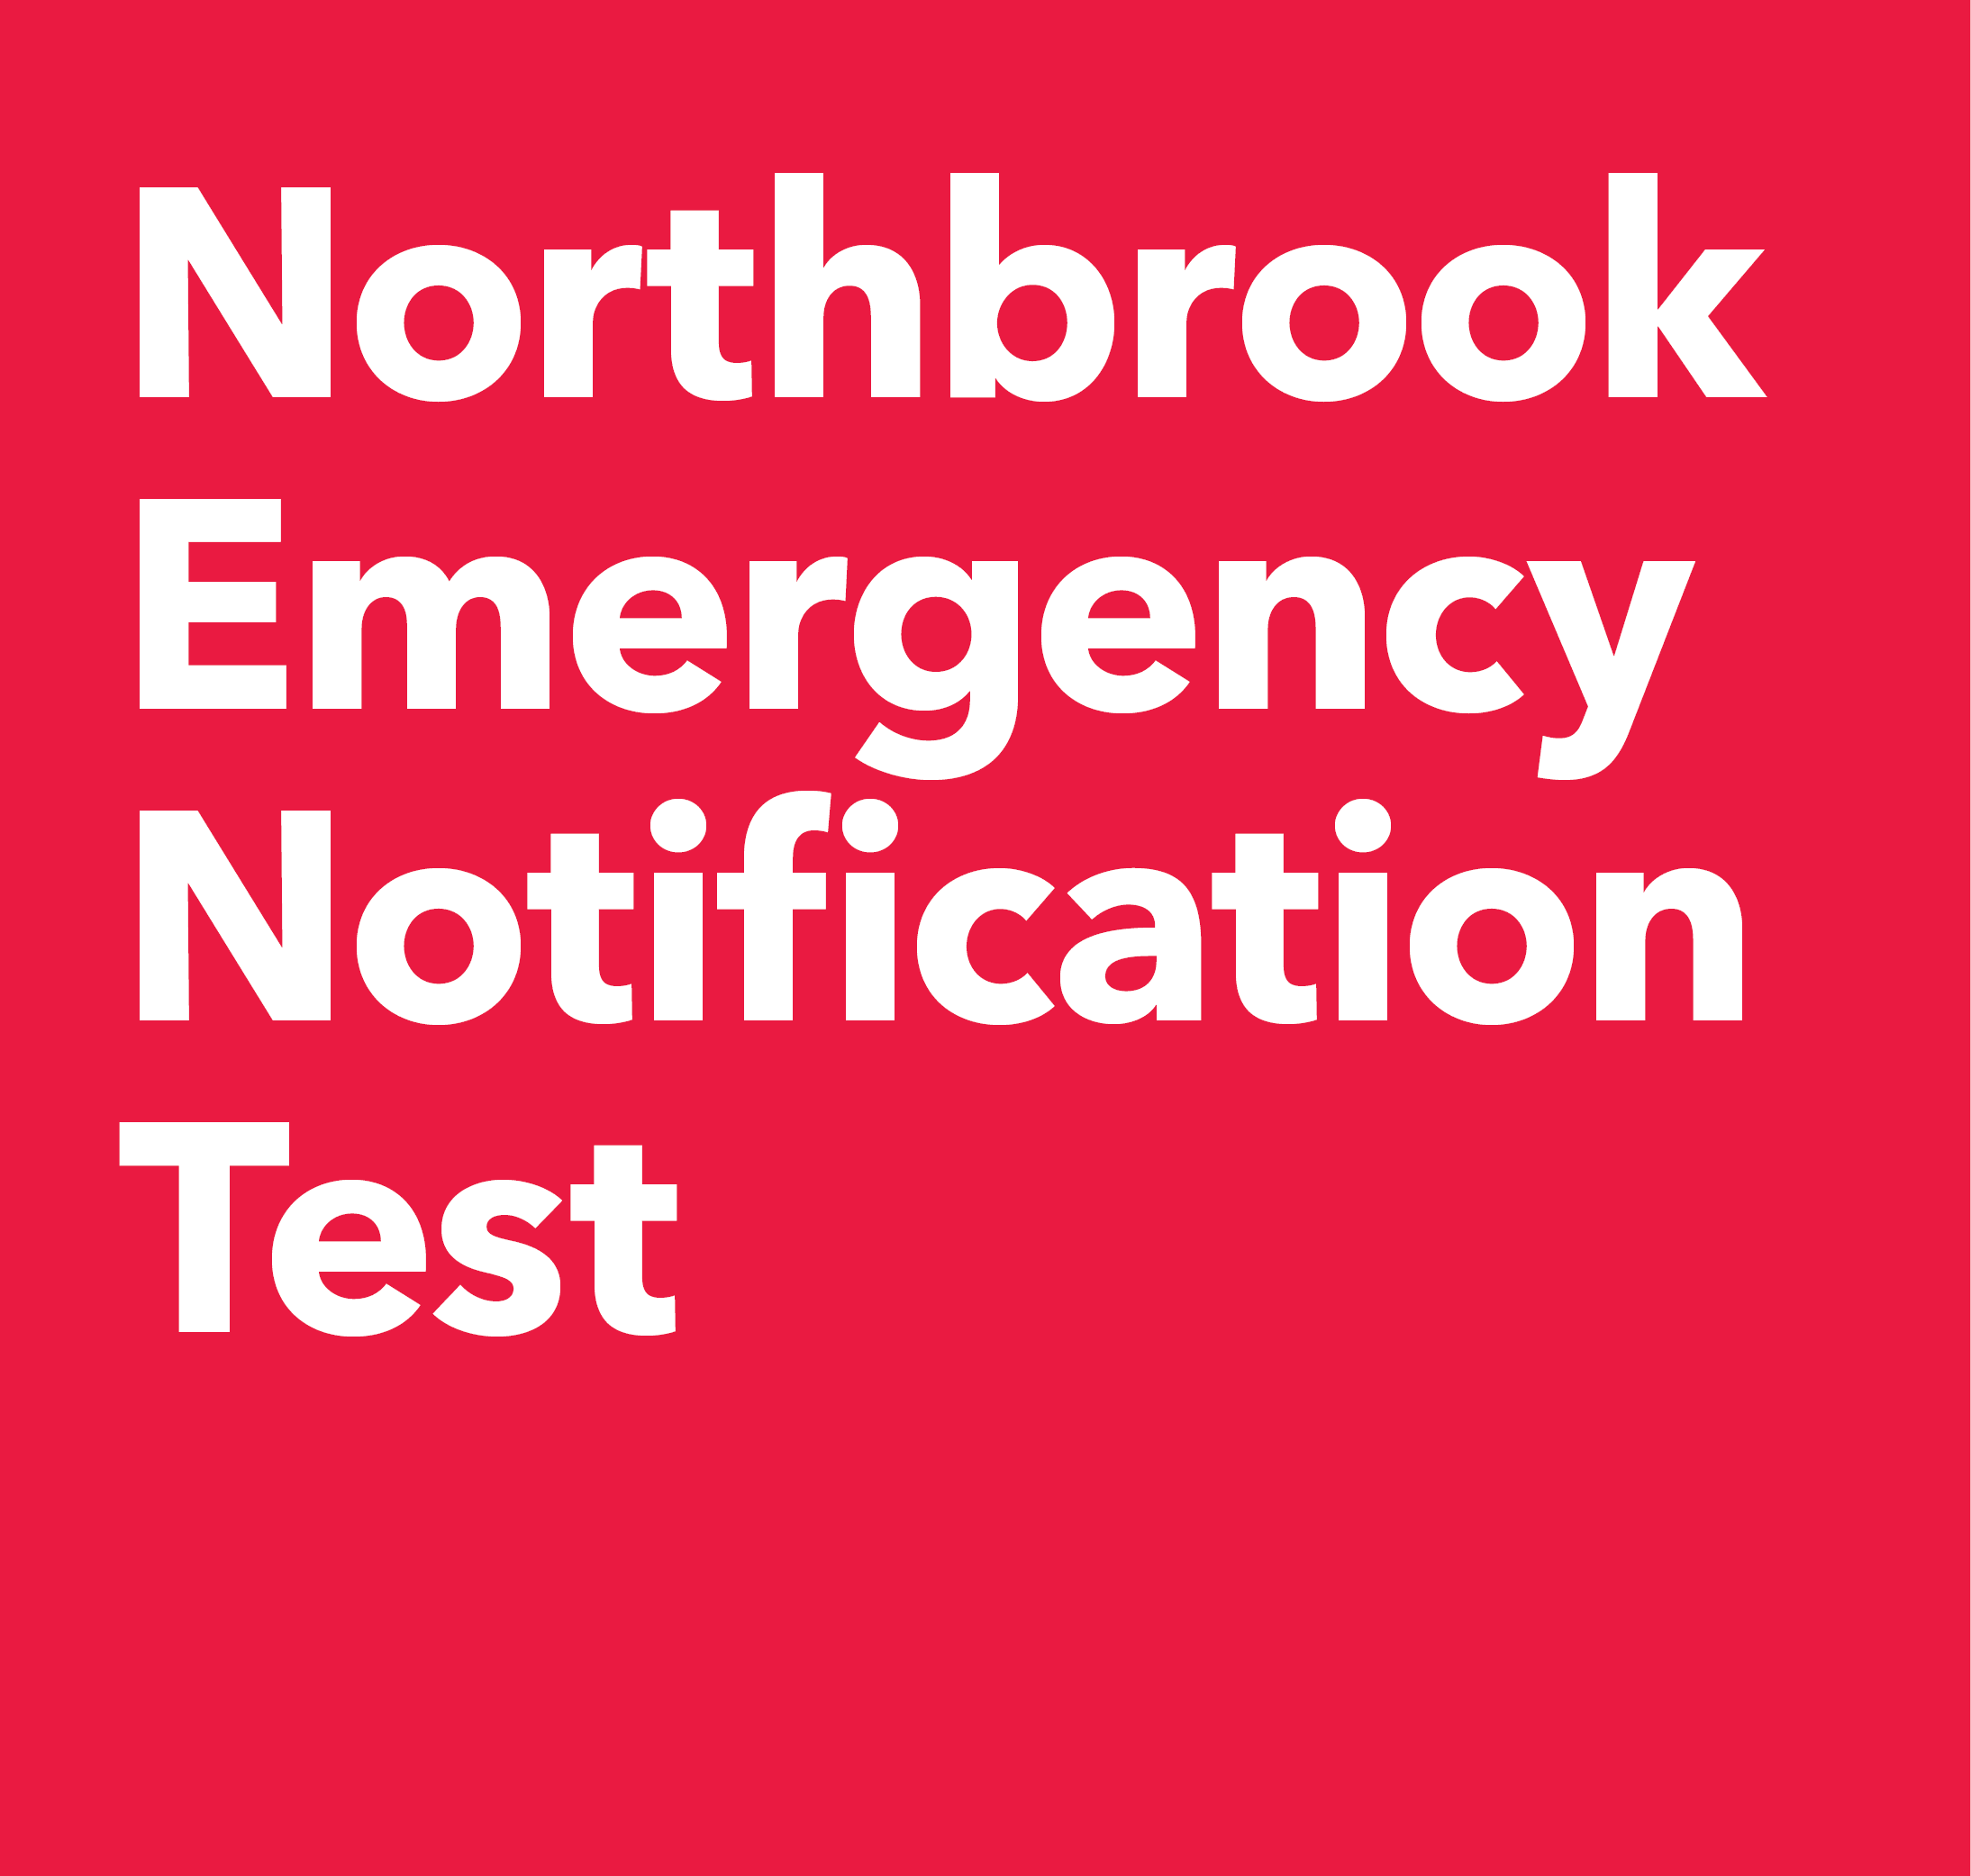 Emergency Notification Test